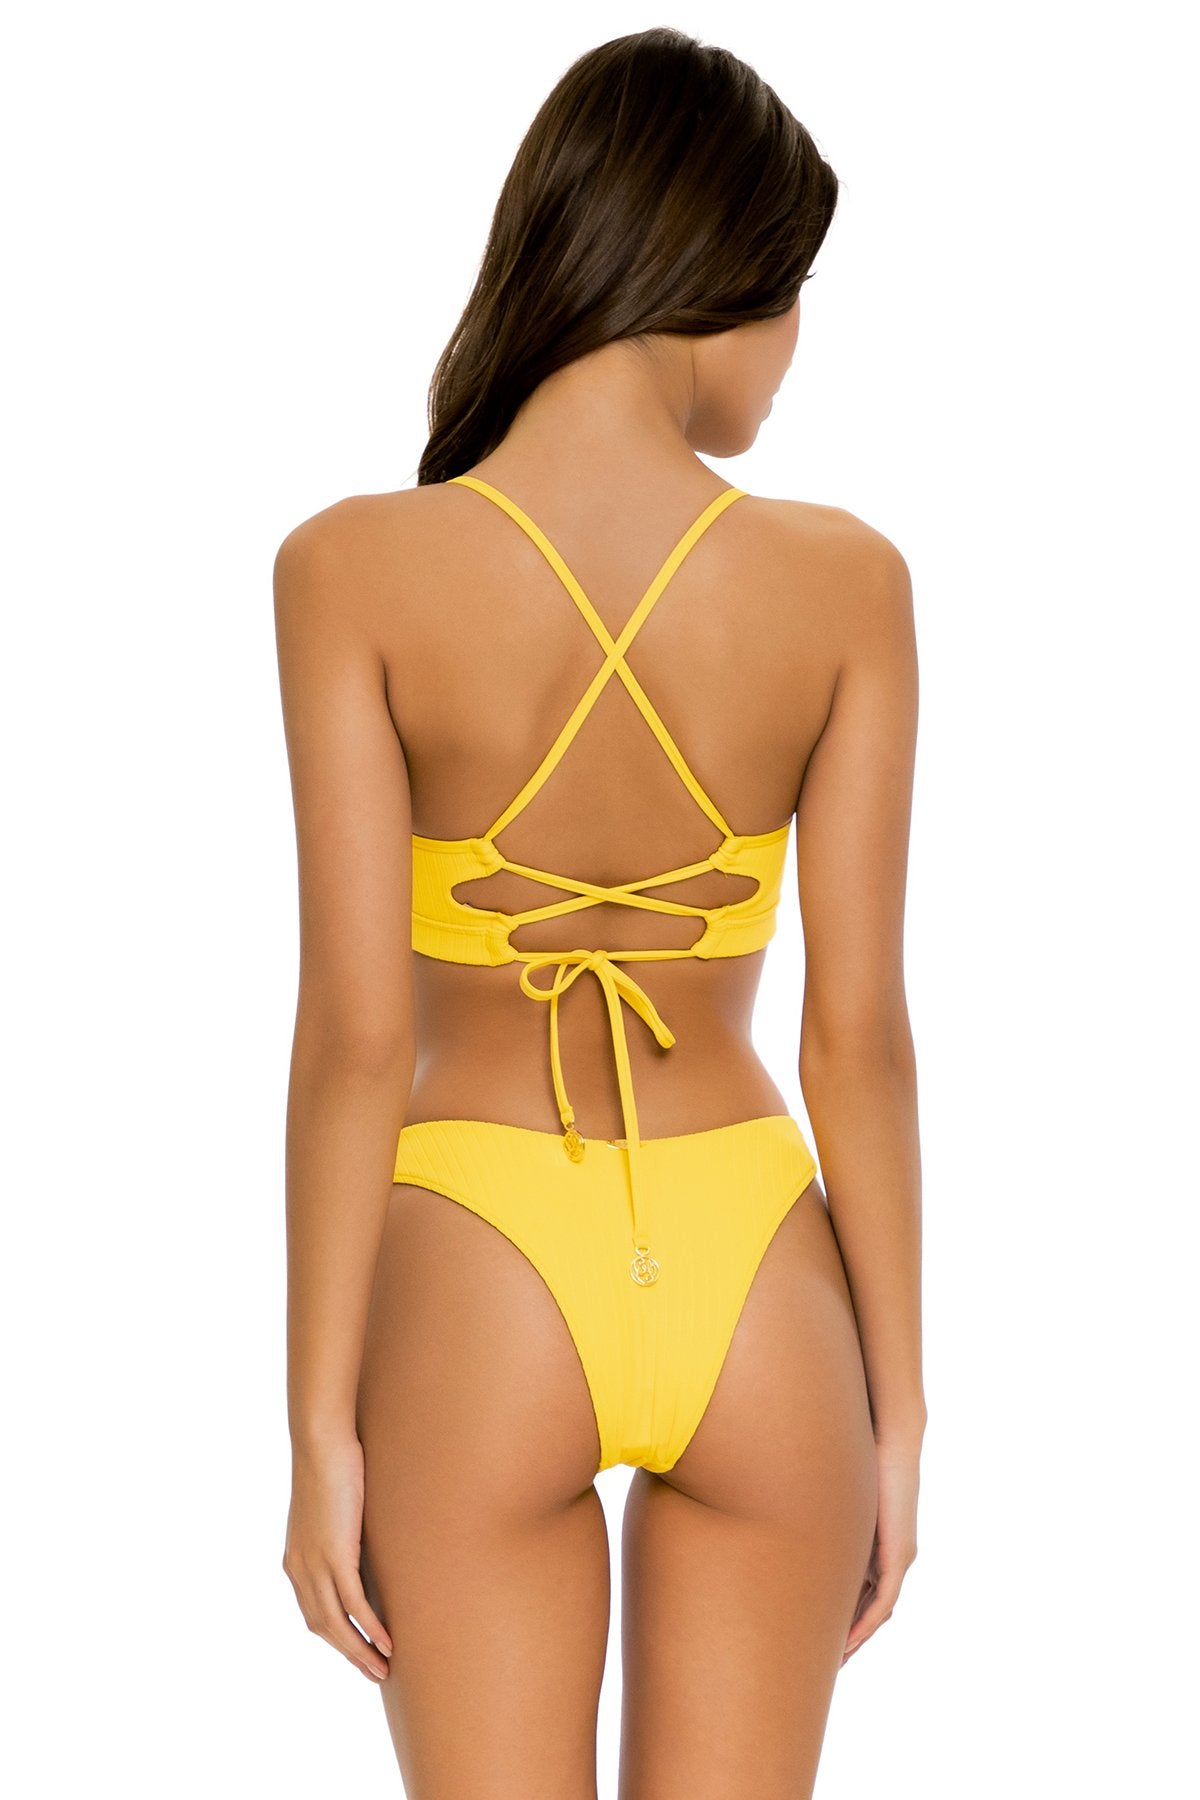 PLAYA VIBES - Underwire Top & High Leg Bottom • Yellow